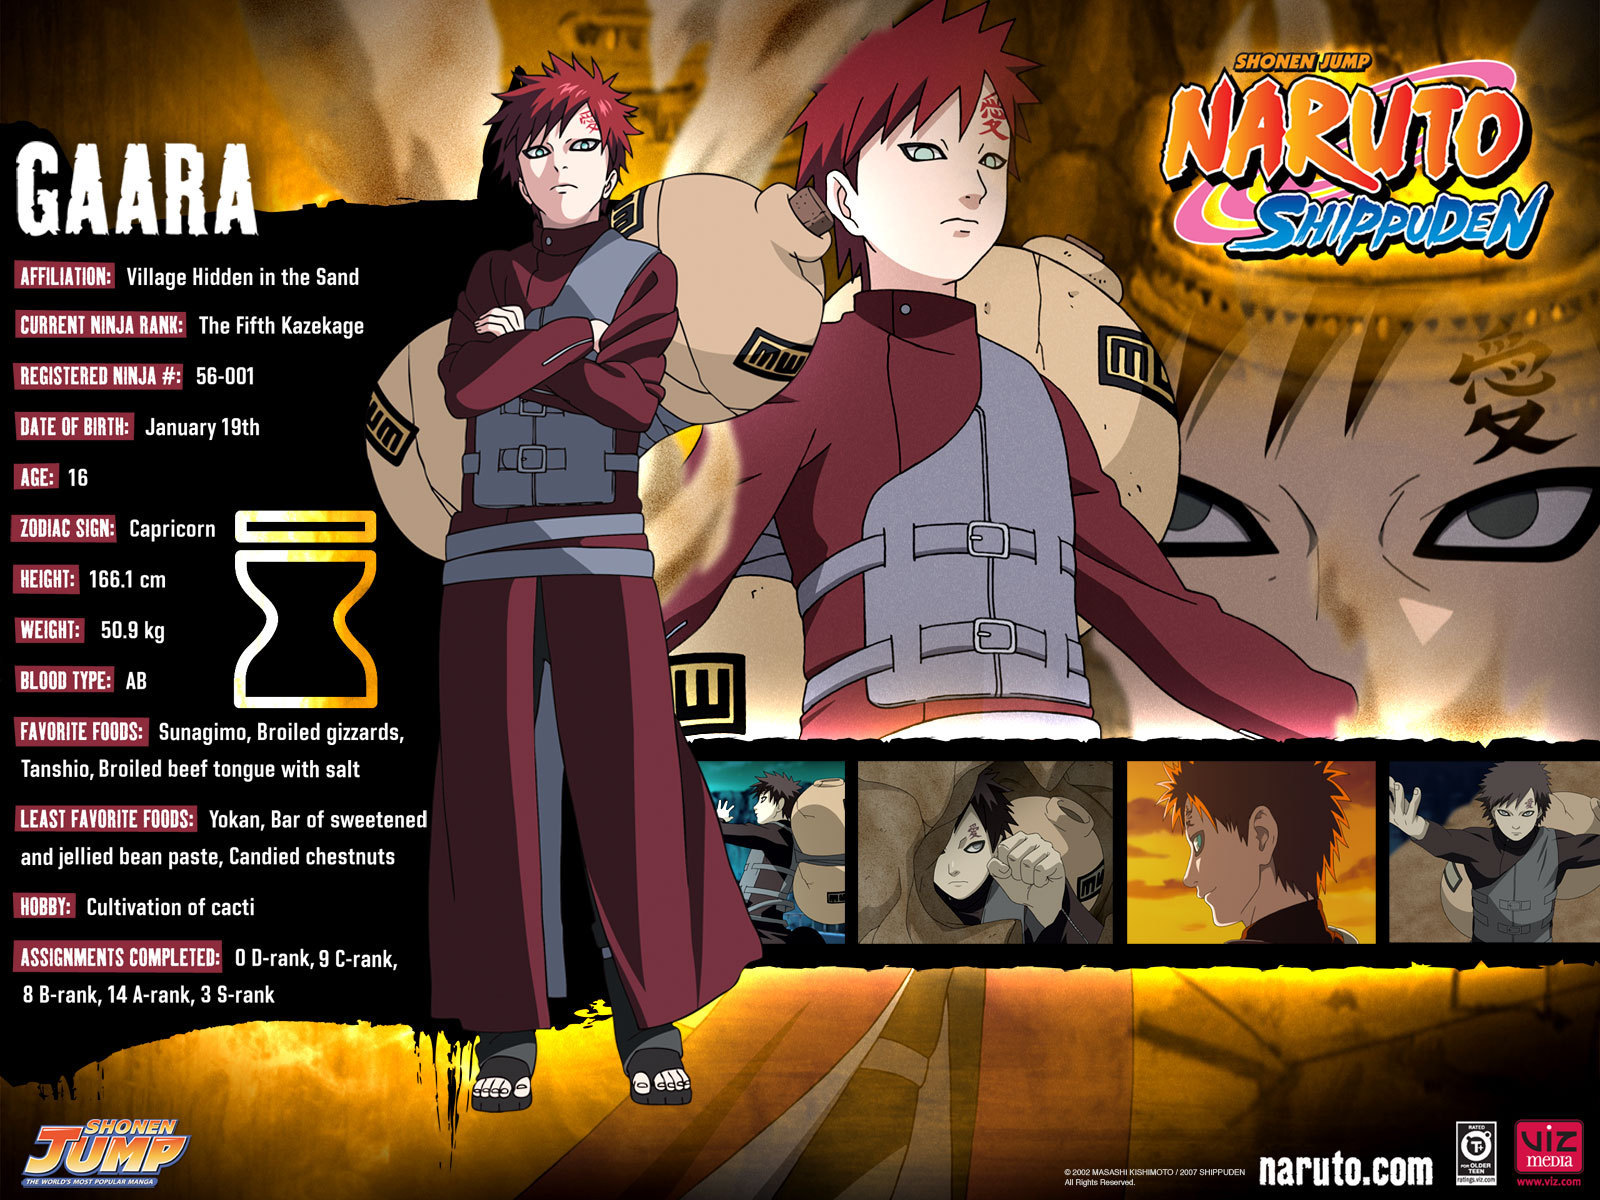 Naruto And Naruto Shippuden Images Narutoshippuden Hd Wallpaper And